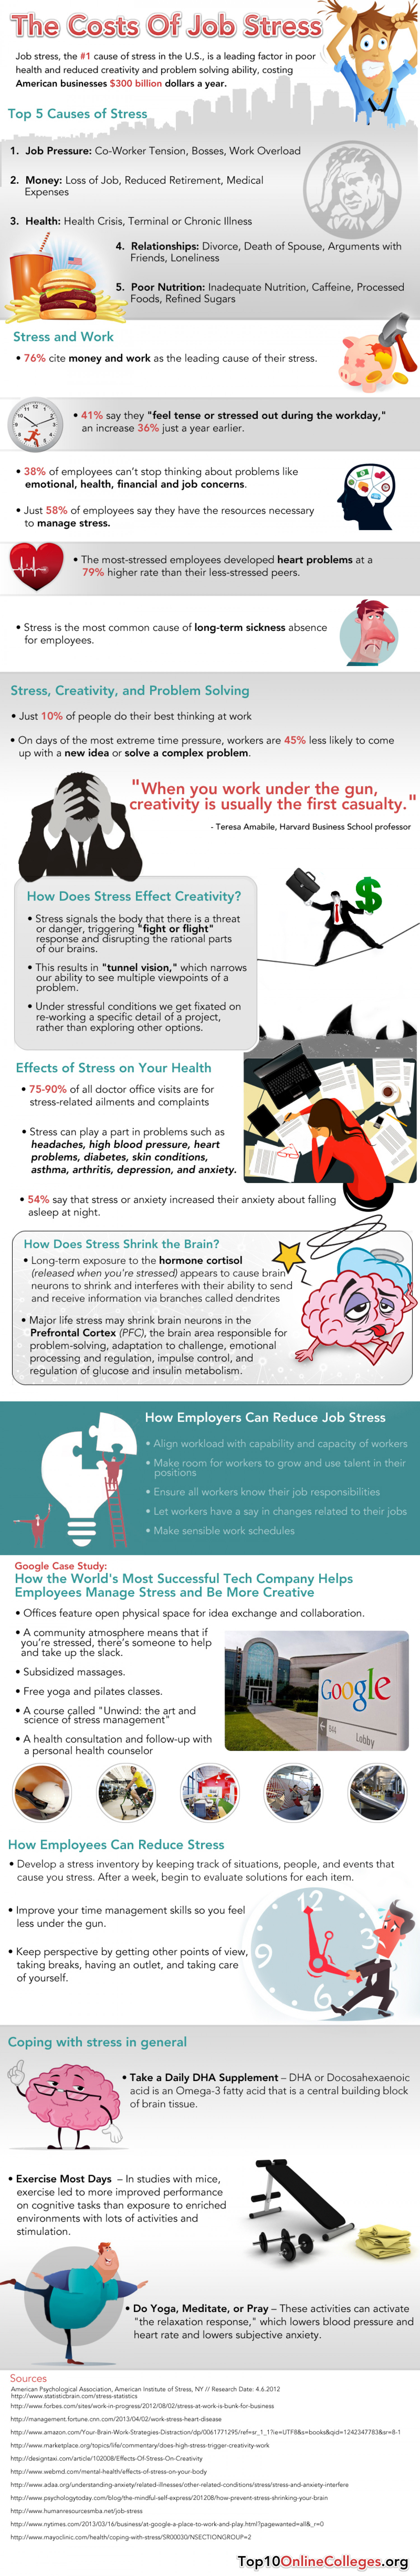 The Cost of Job Stress Infographic